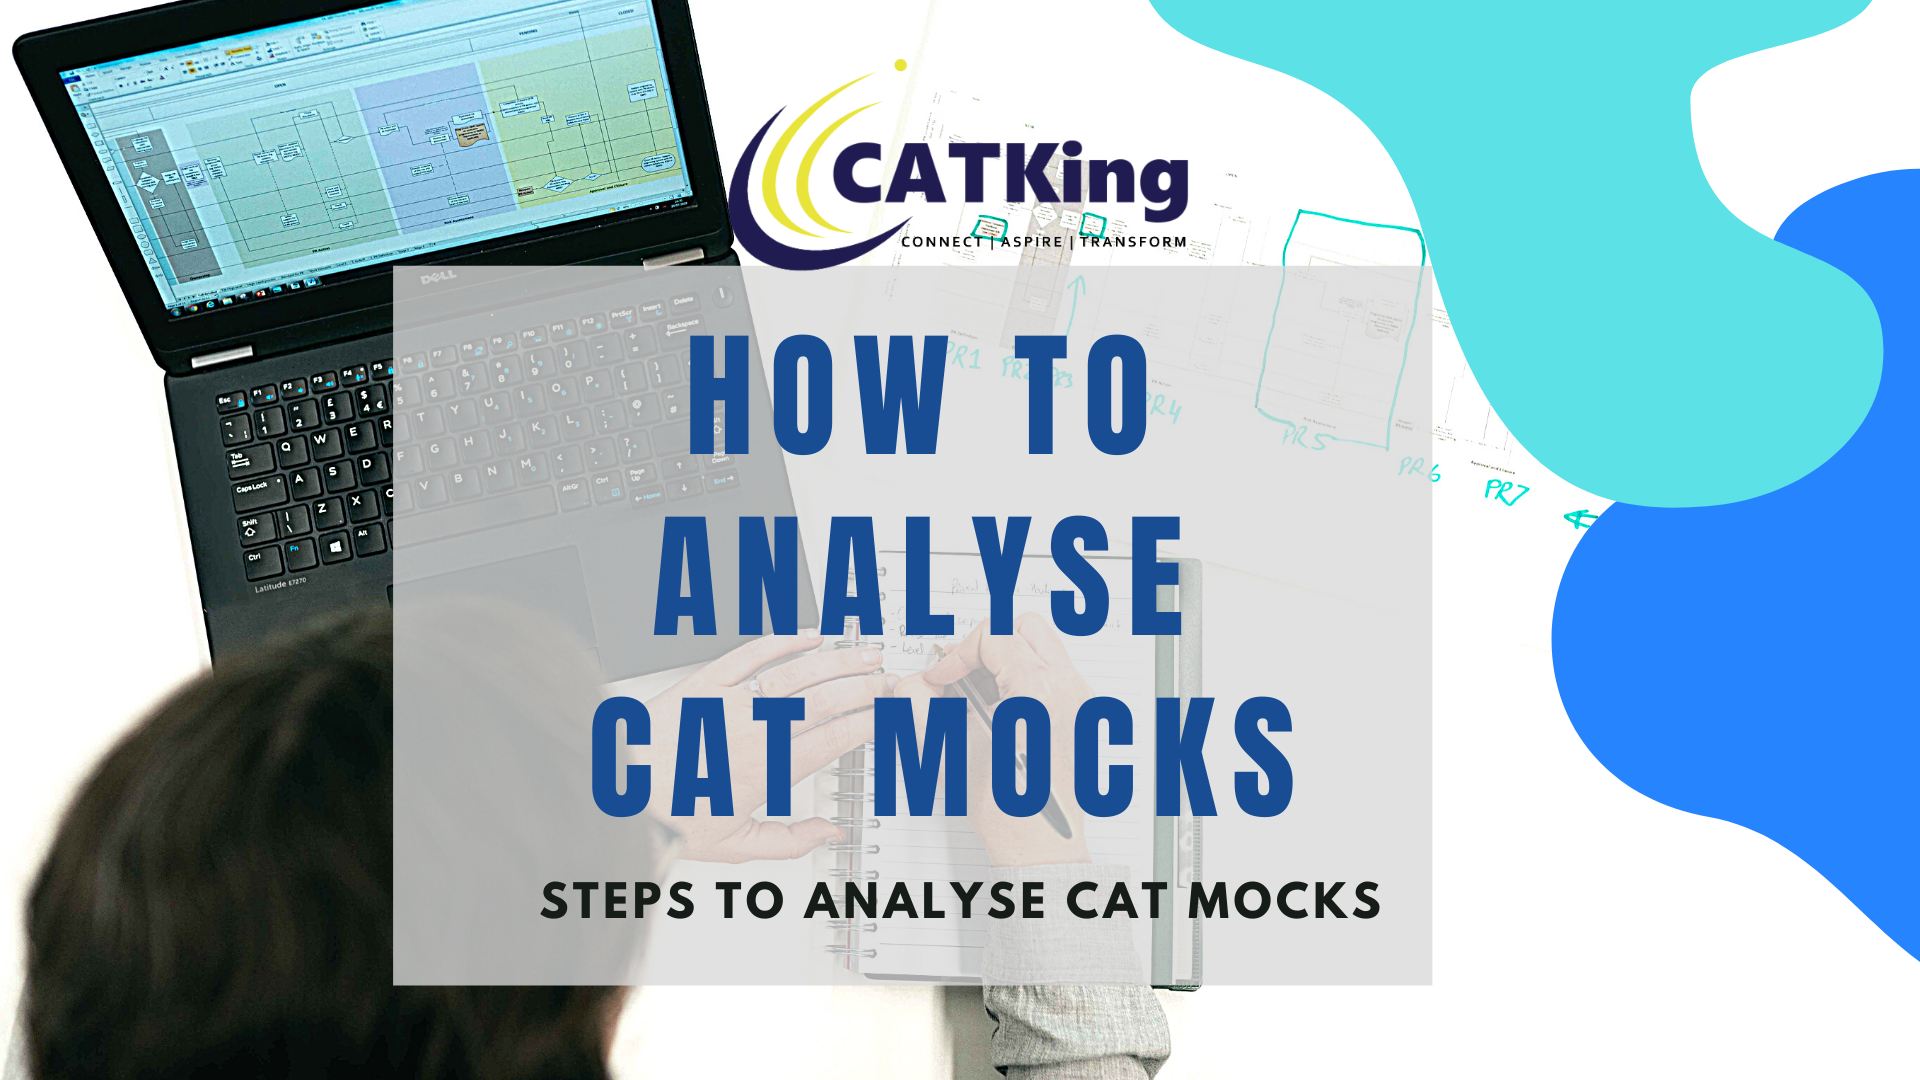 catking how to analyse cat mocks